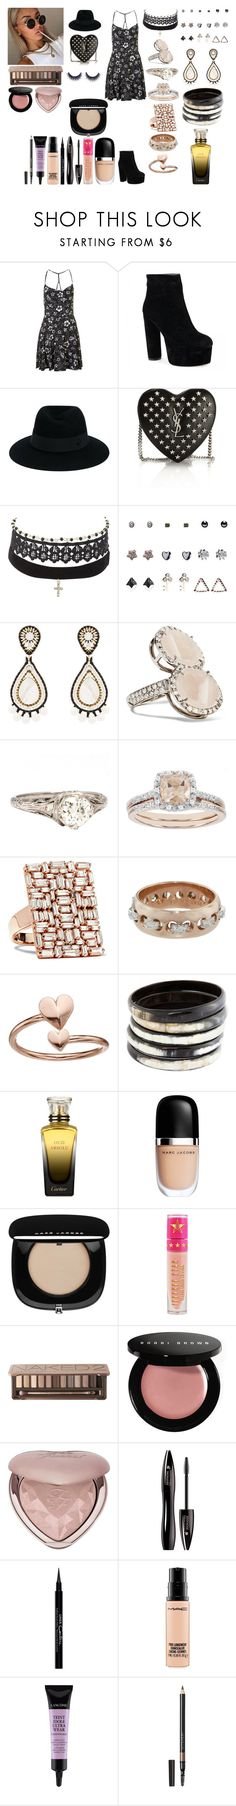 """Untitled #813"" by asiebenthaler ❤ liked on Polyvore featuring Topshop, Maison Michel, Yves Saint Laurent, Charlotte Russe, Wet Seal, Miguel Ases, Kimberly McDonald, Modern Bride, Suzanne Kalan and Sharon Khazzam"